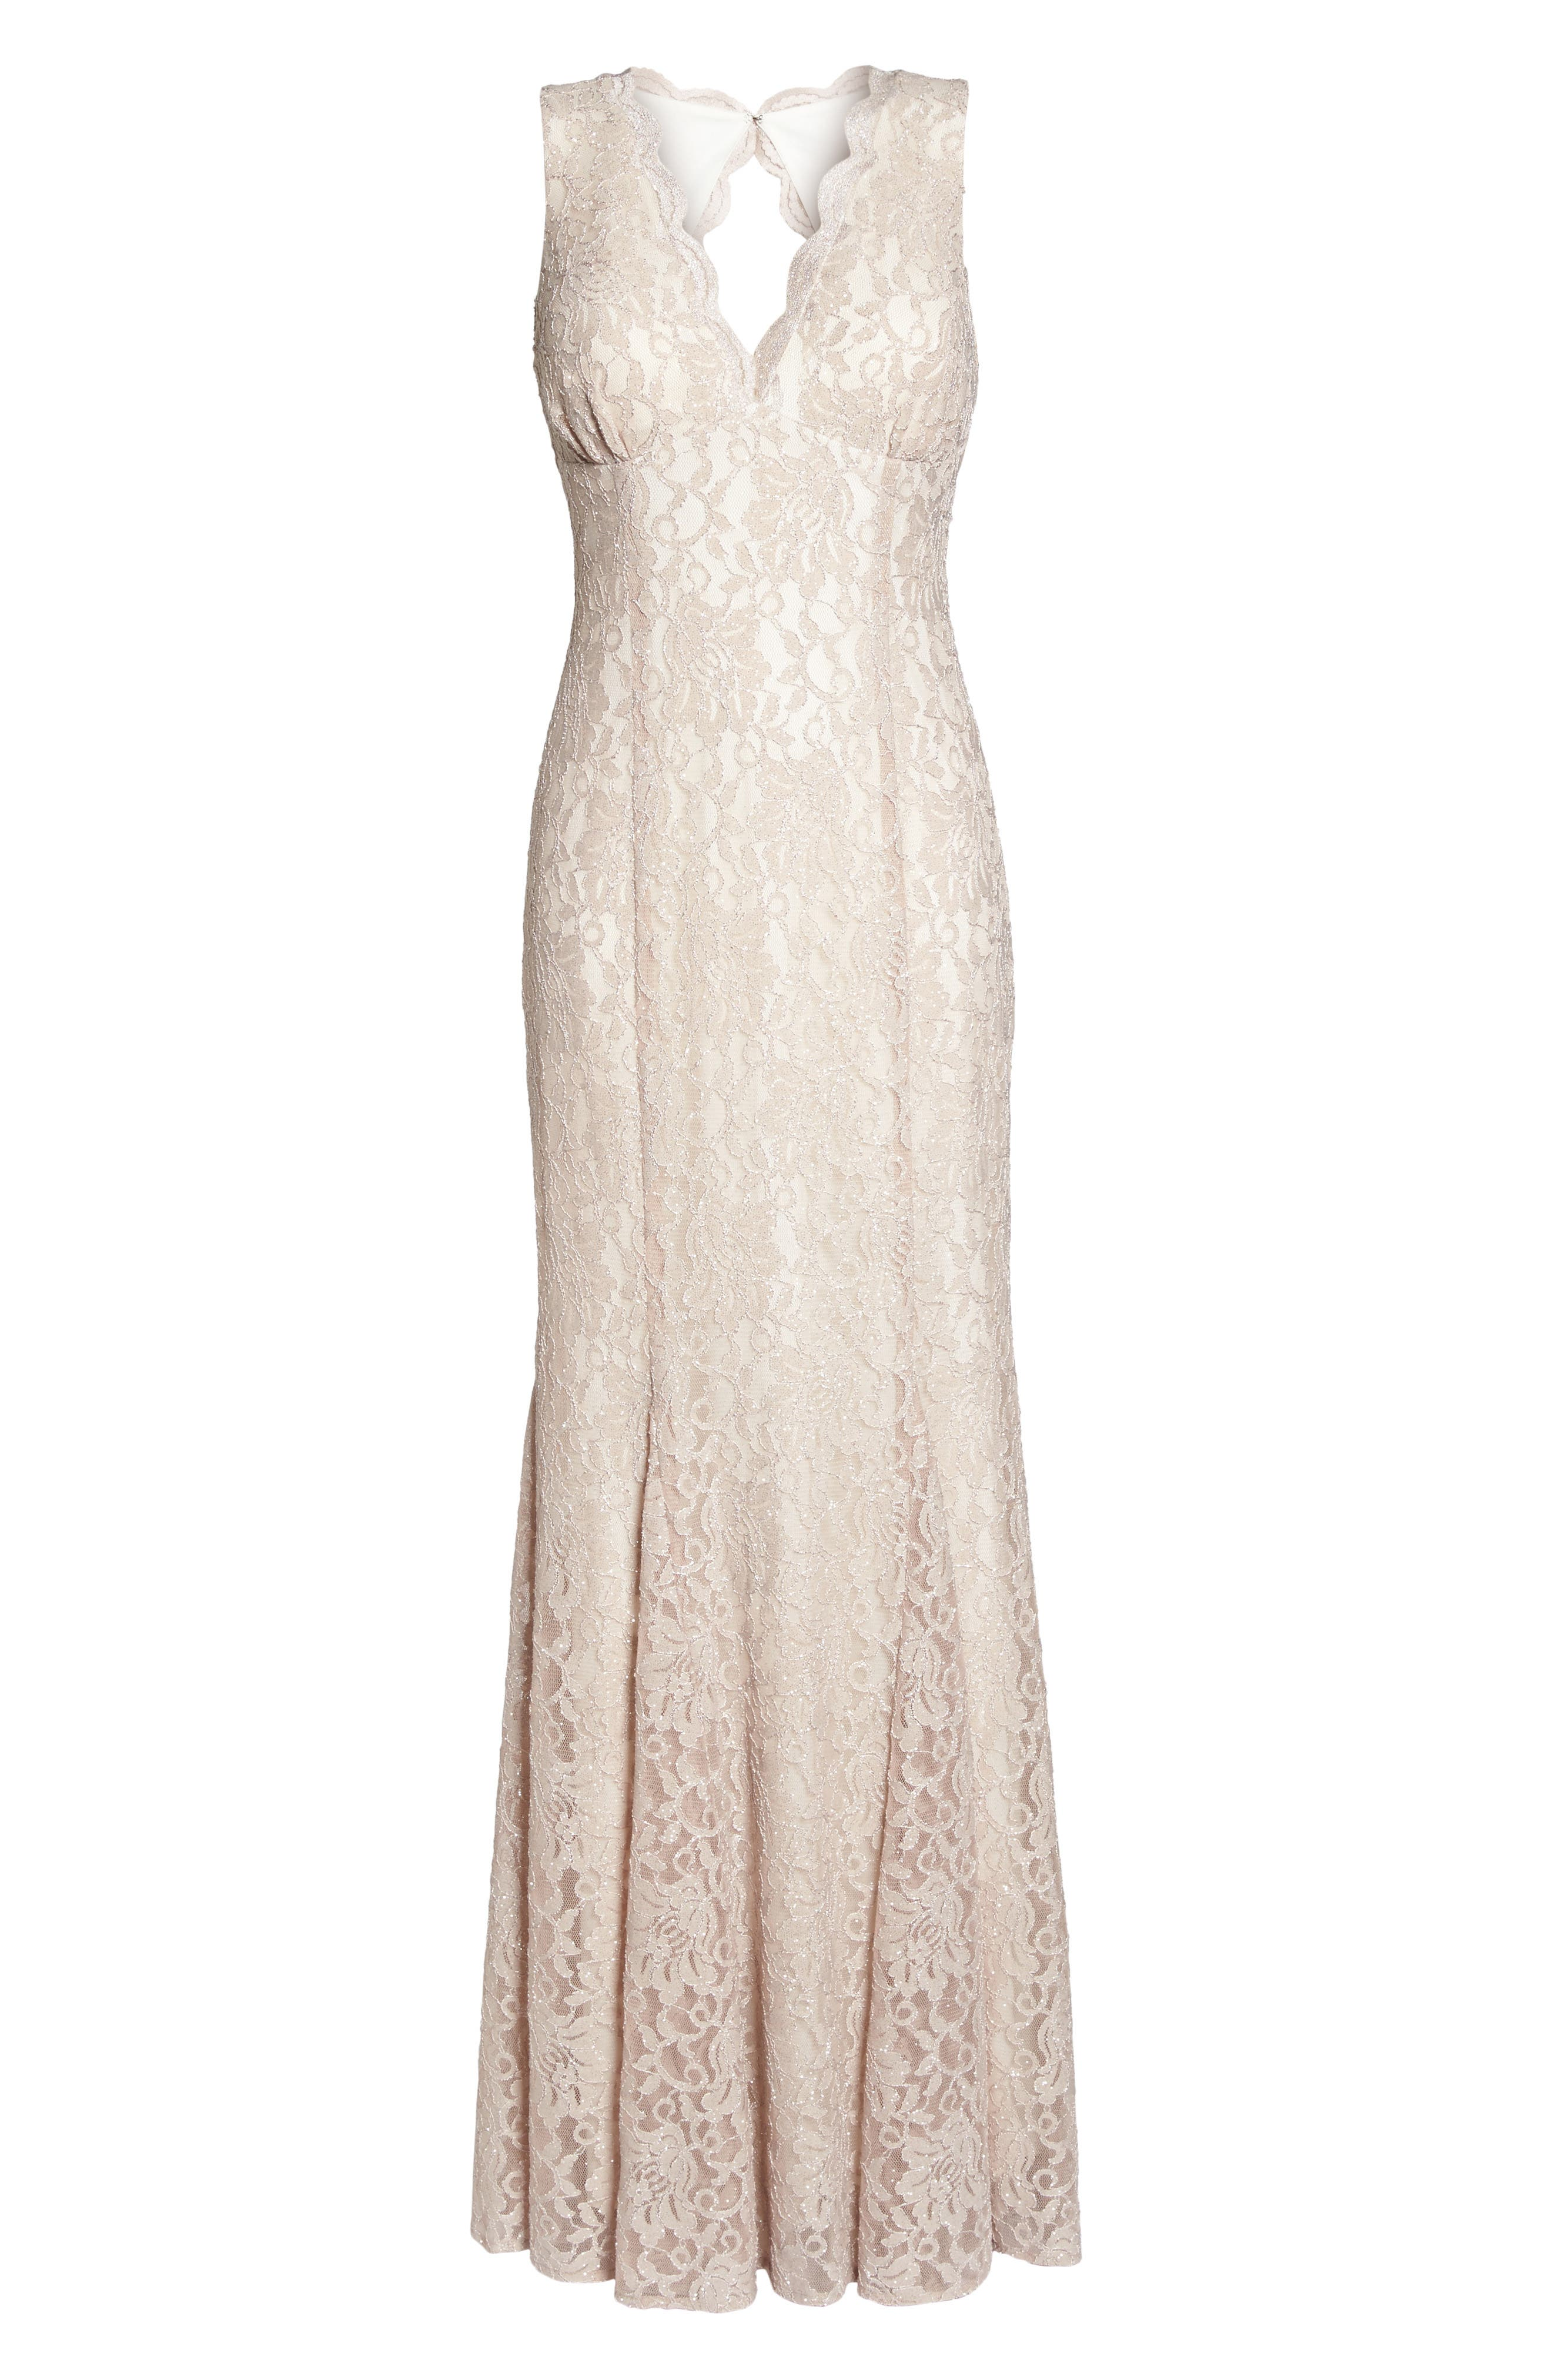 MORGAN & CO., Glitter Lace Trumpet Dress, Alternate thumbnail 6, color, CHAMPAGNE / IVORY